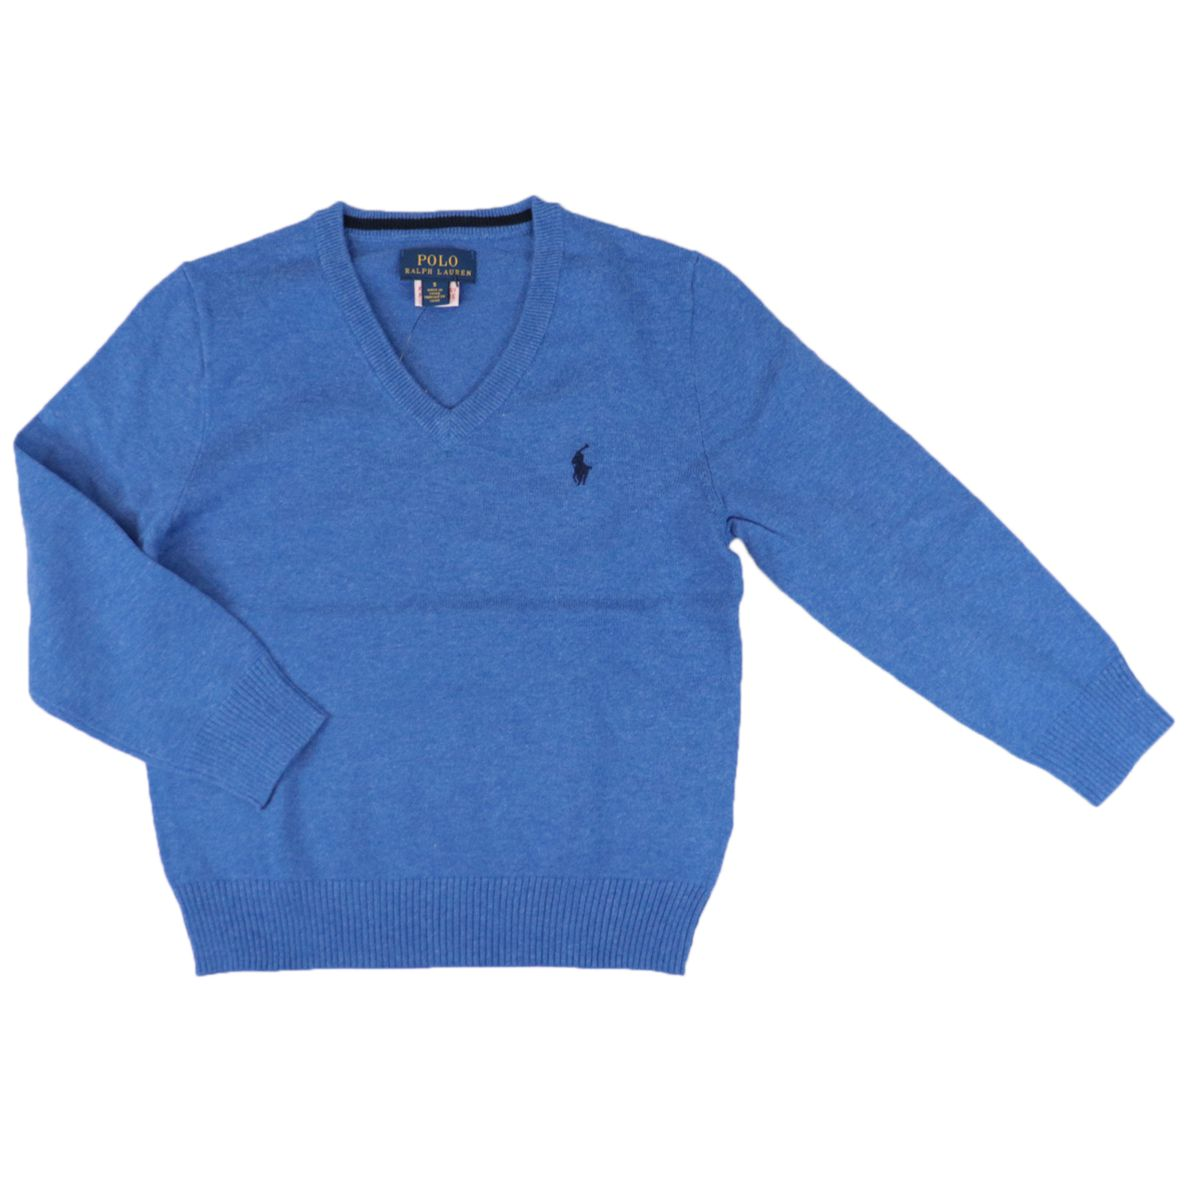 Cotton pullover with logo embroidery and V-neck Dockside blue Polo Ralph Lauren